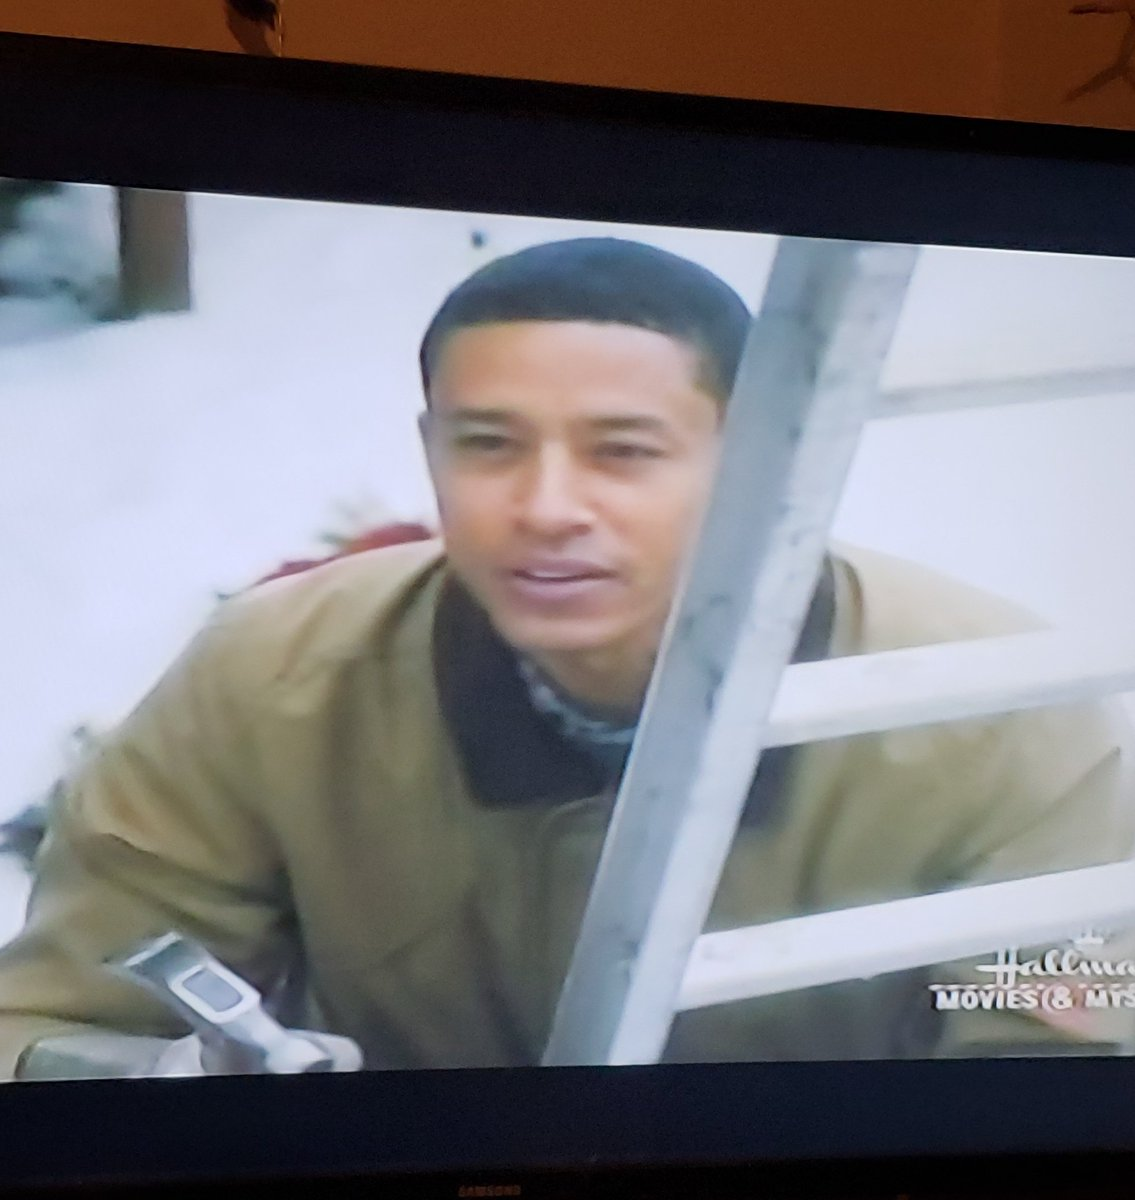 RT @MzErikaBoopz: ???????????? #MemoriesOfChristmas   He didn't have to bang so early doe @hallmarkmovie @ChristinaMilian https://t.co/Lk5XhvJRmF